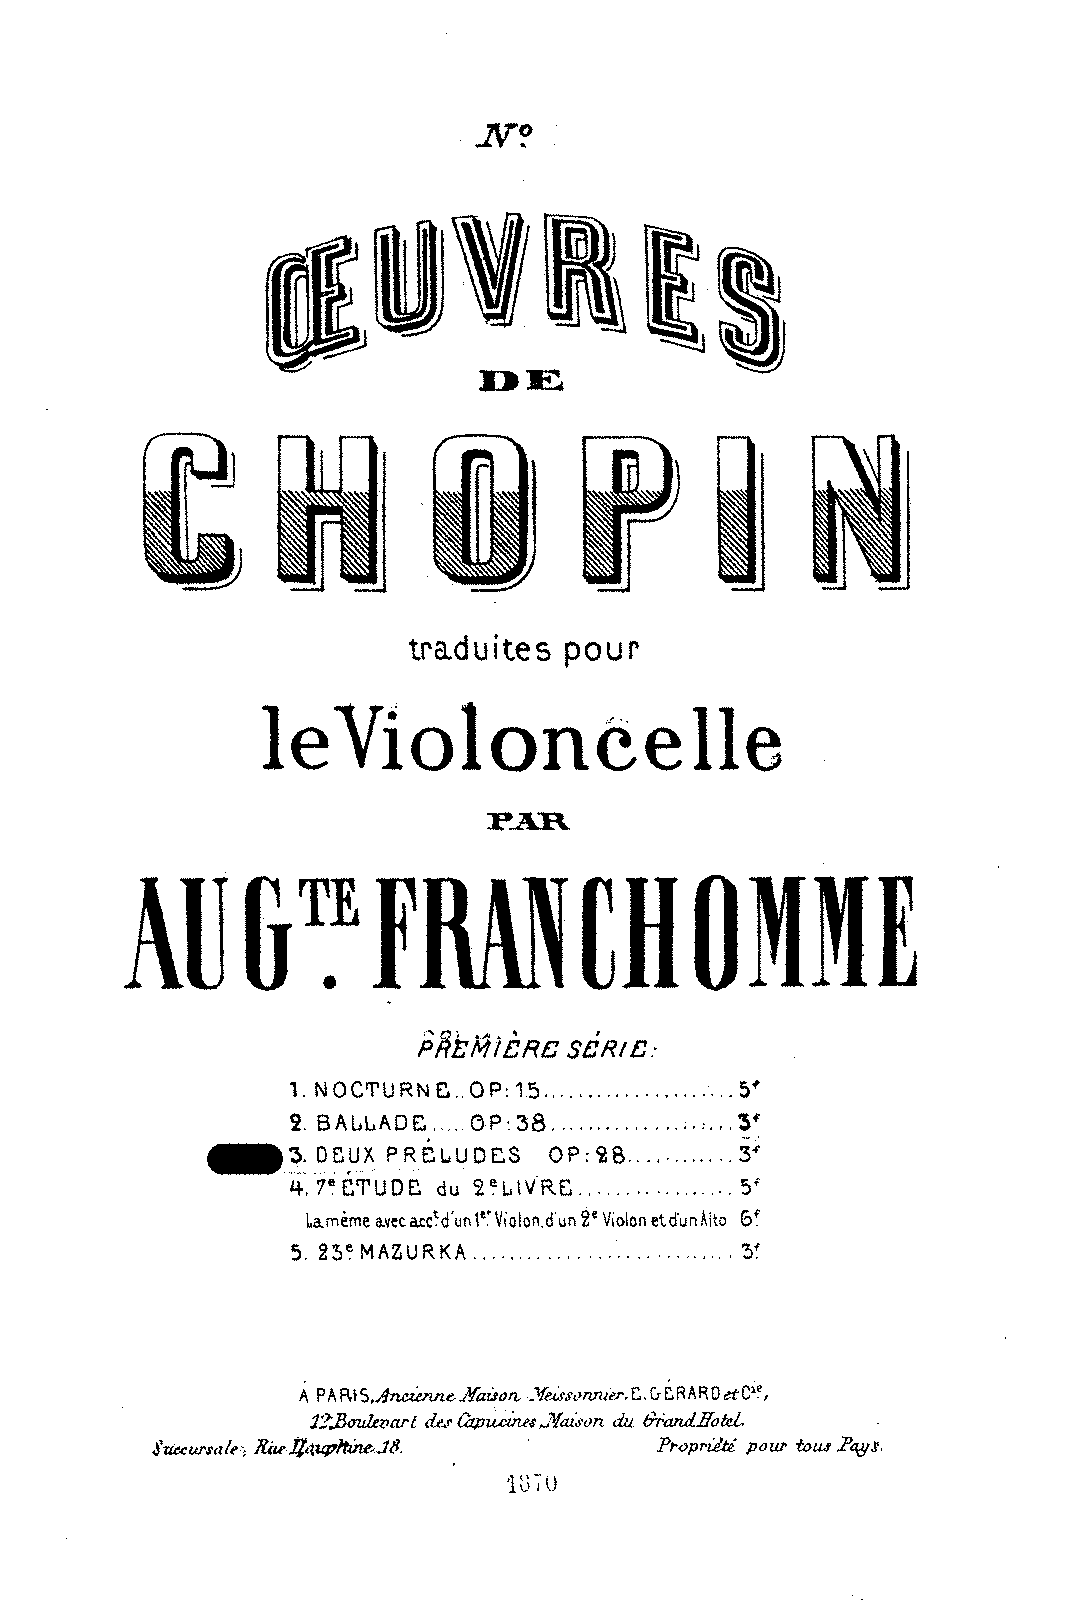 PMLP02344-Chopin - 2 Preludes (No20 & No7) Op28 (Franchomme) for Cello and Piano.pdf